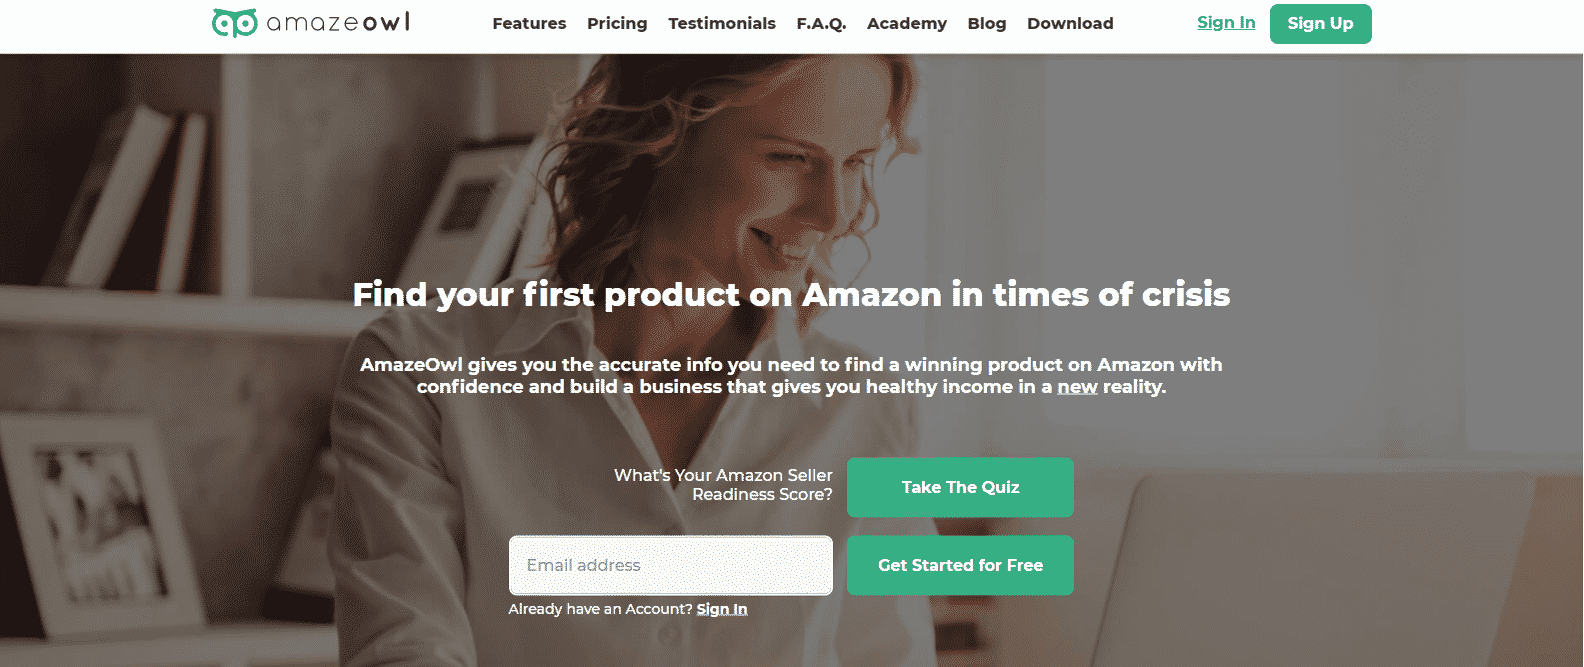 Amazon Software Review: Top 25 Best Amazon software for 2021 21